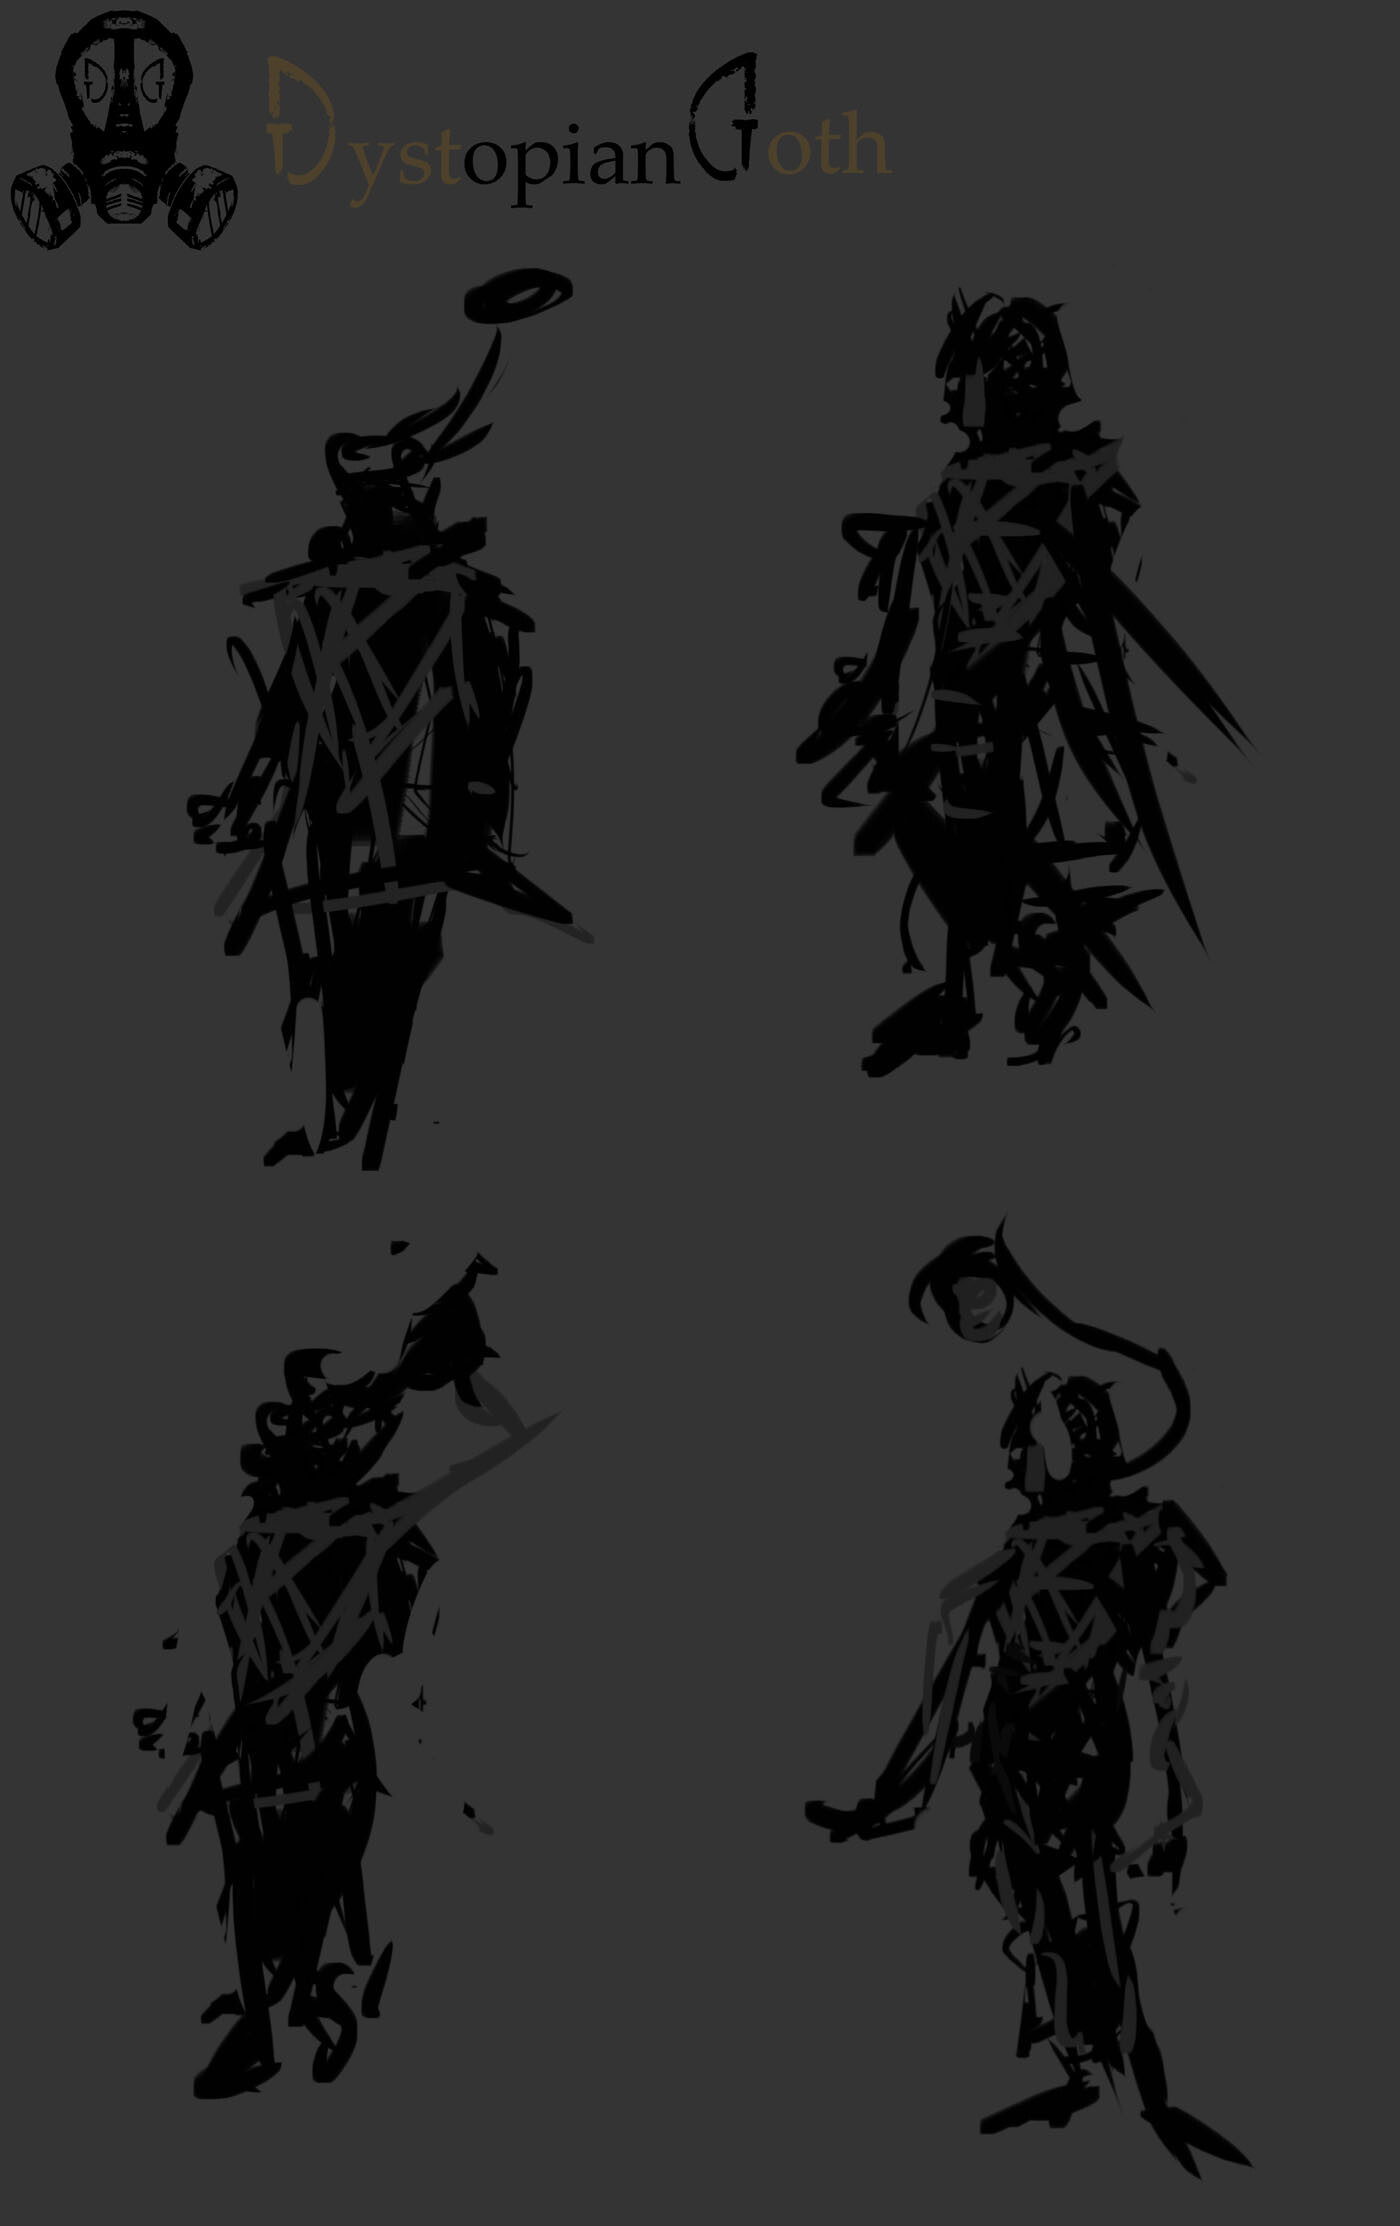 Iterative character designs created for Dystopian Goth | Character_03 - Benevolent